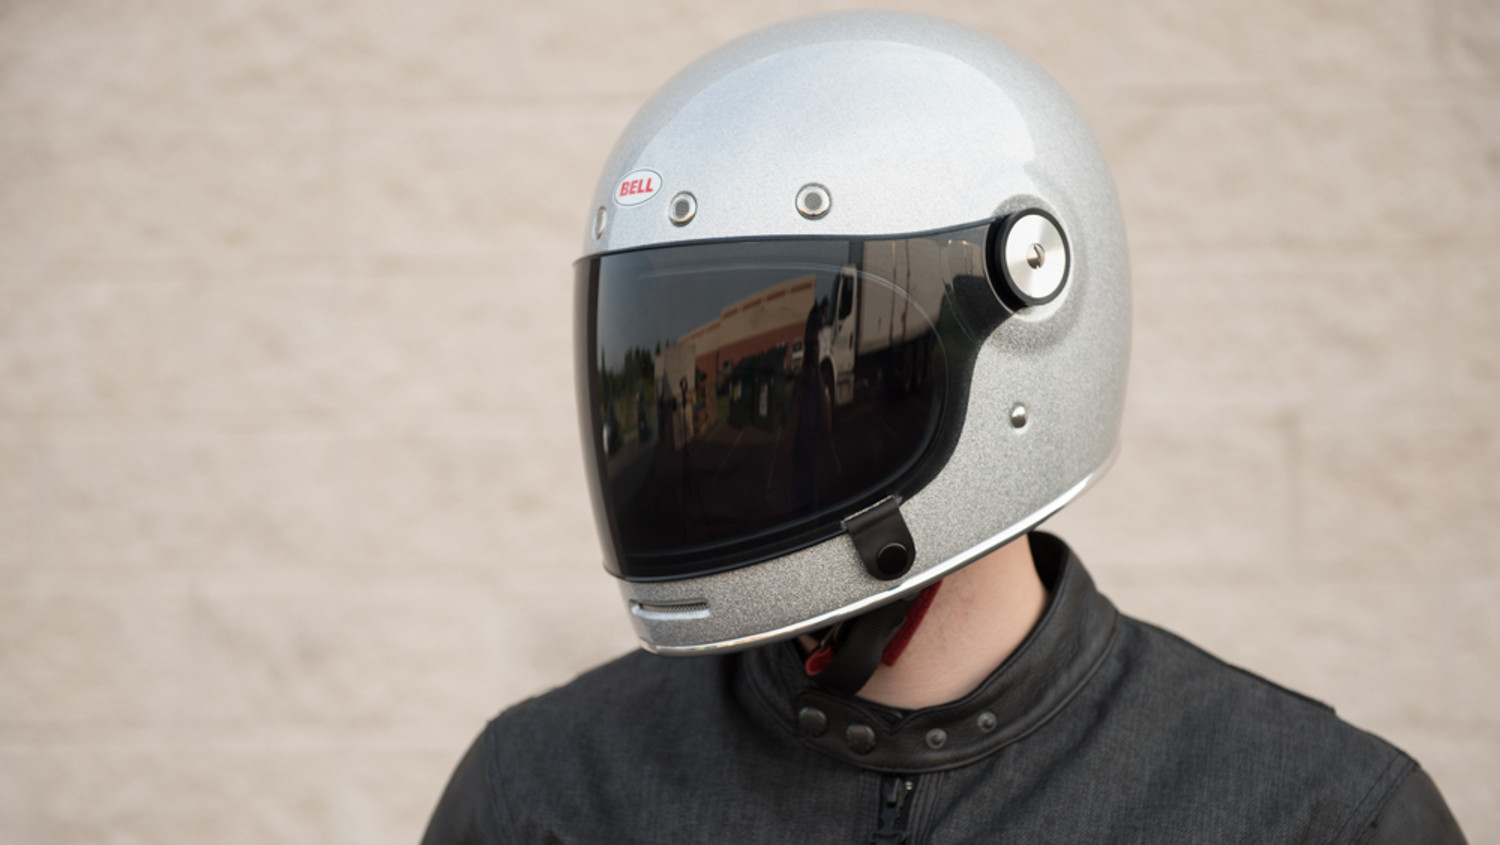 New Bell Motorcycle Helmets - Bullitt, Custom 500, Moto 3 and More